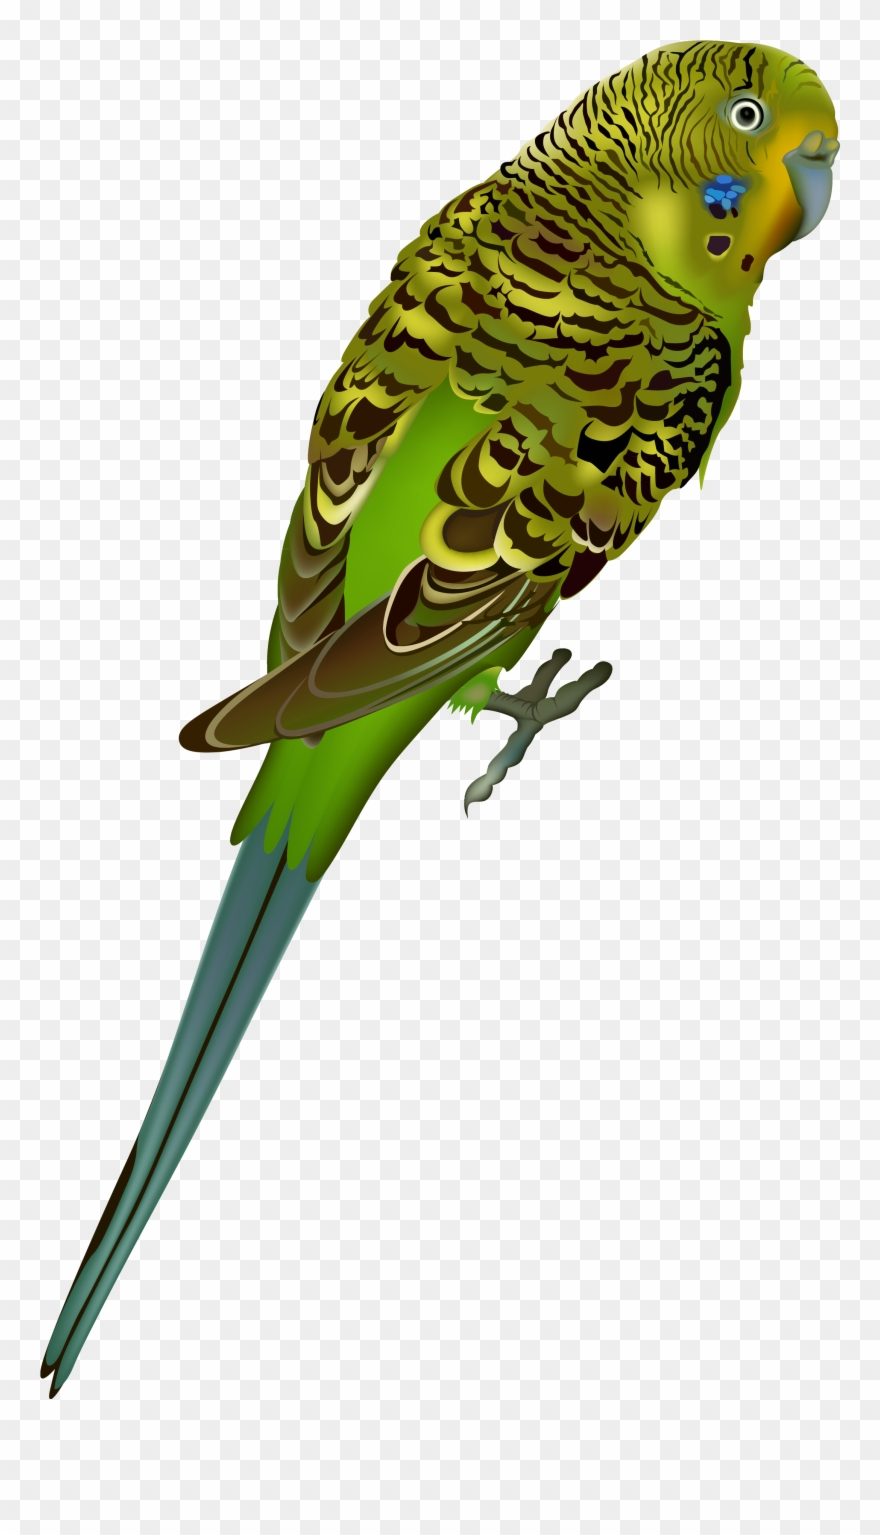 Birds Png Images Free Download Bird.